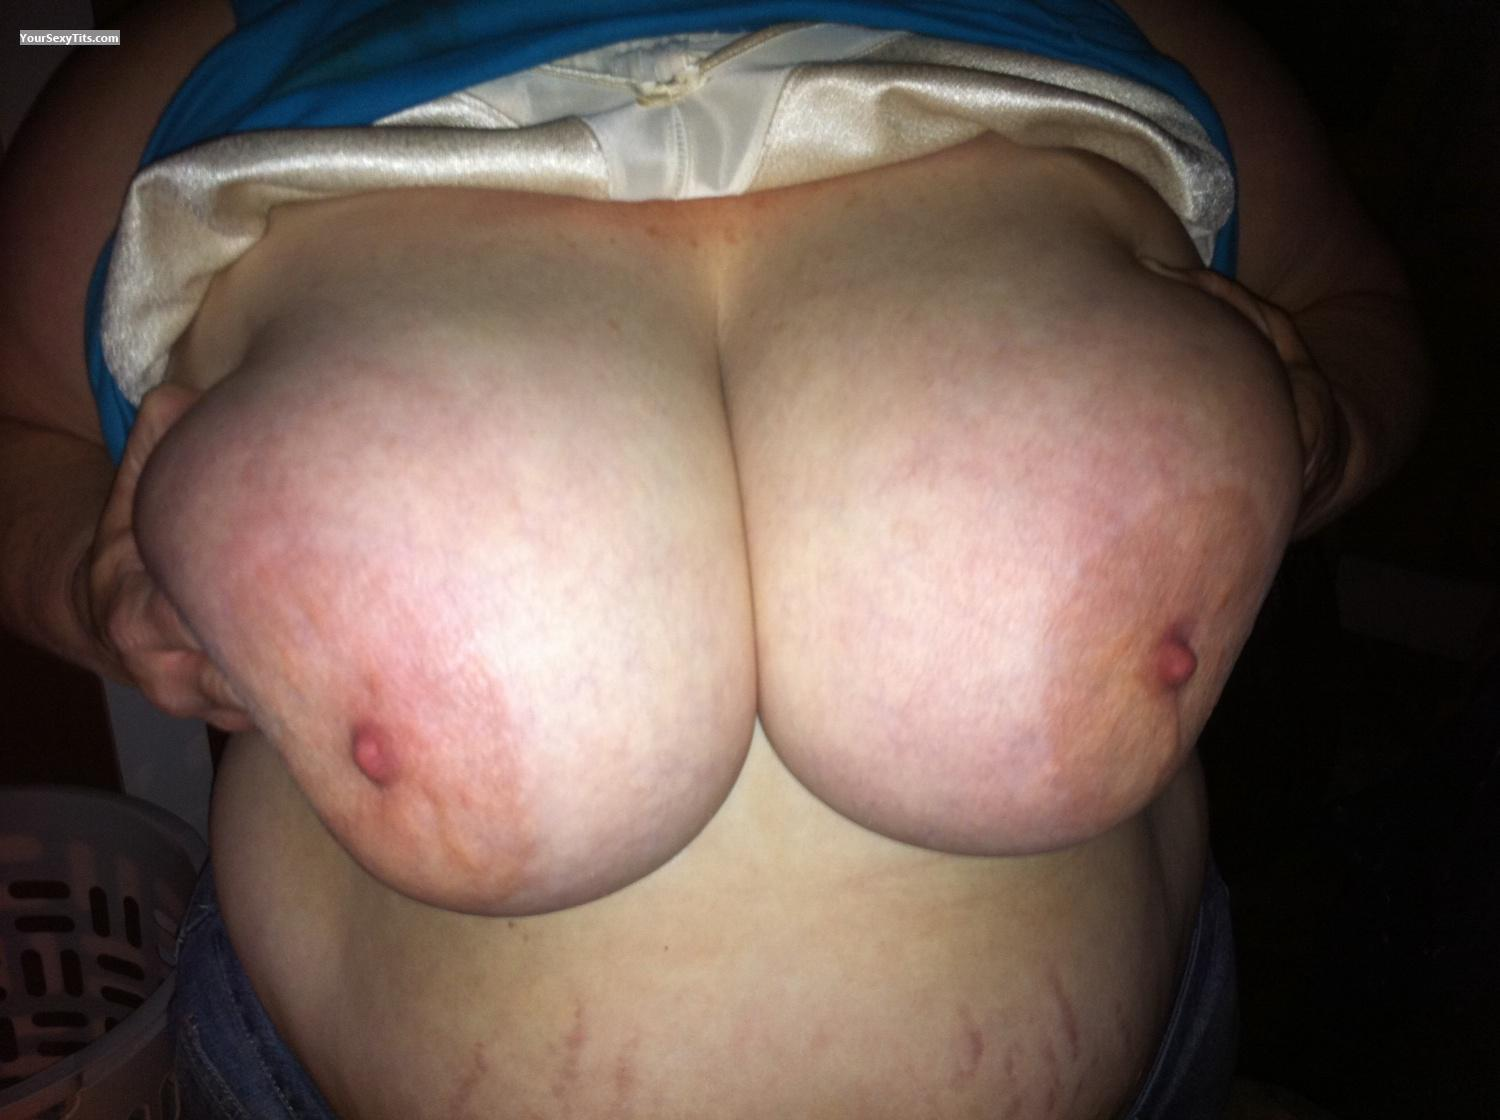 Tit Flash: Big Tits By IPhone - B from United States